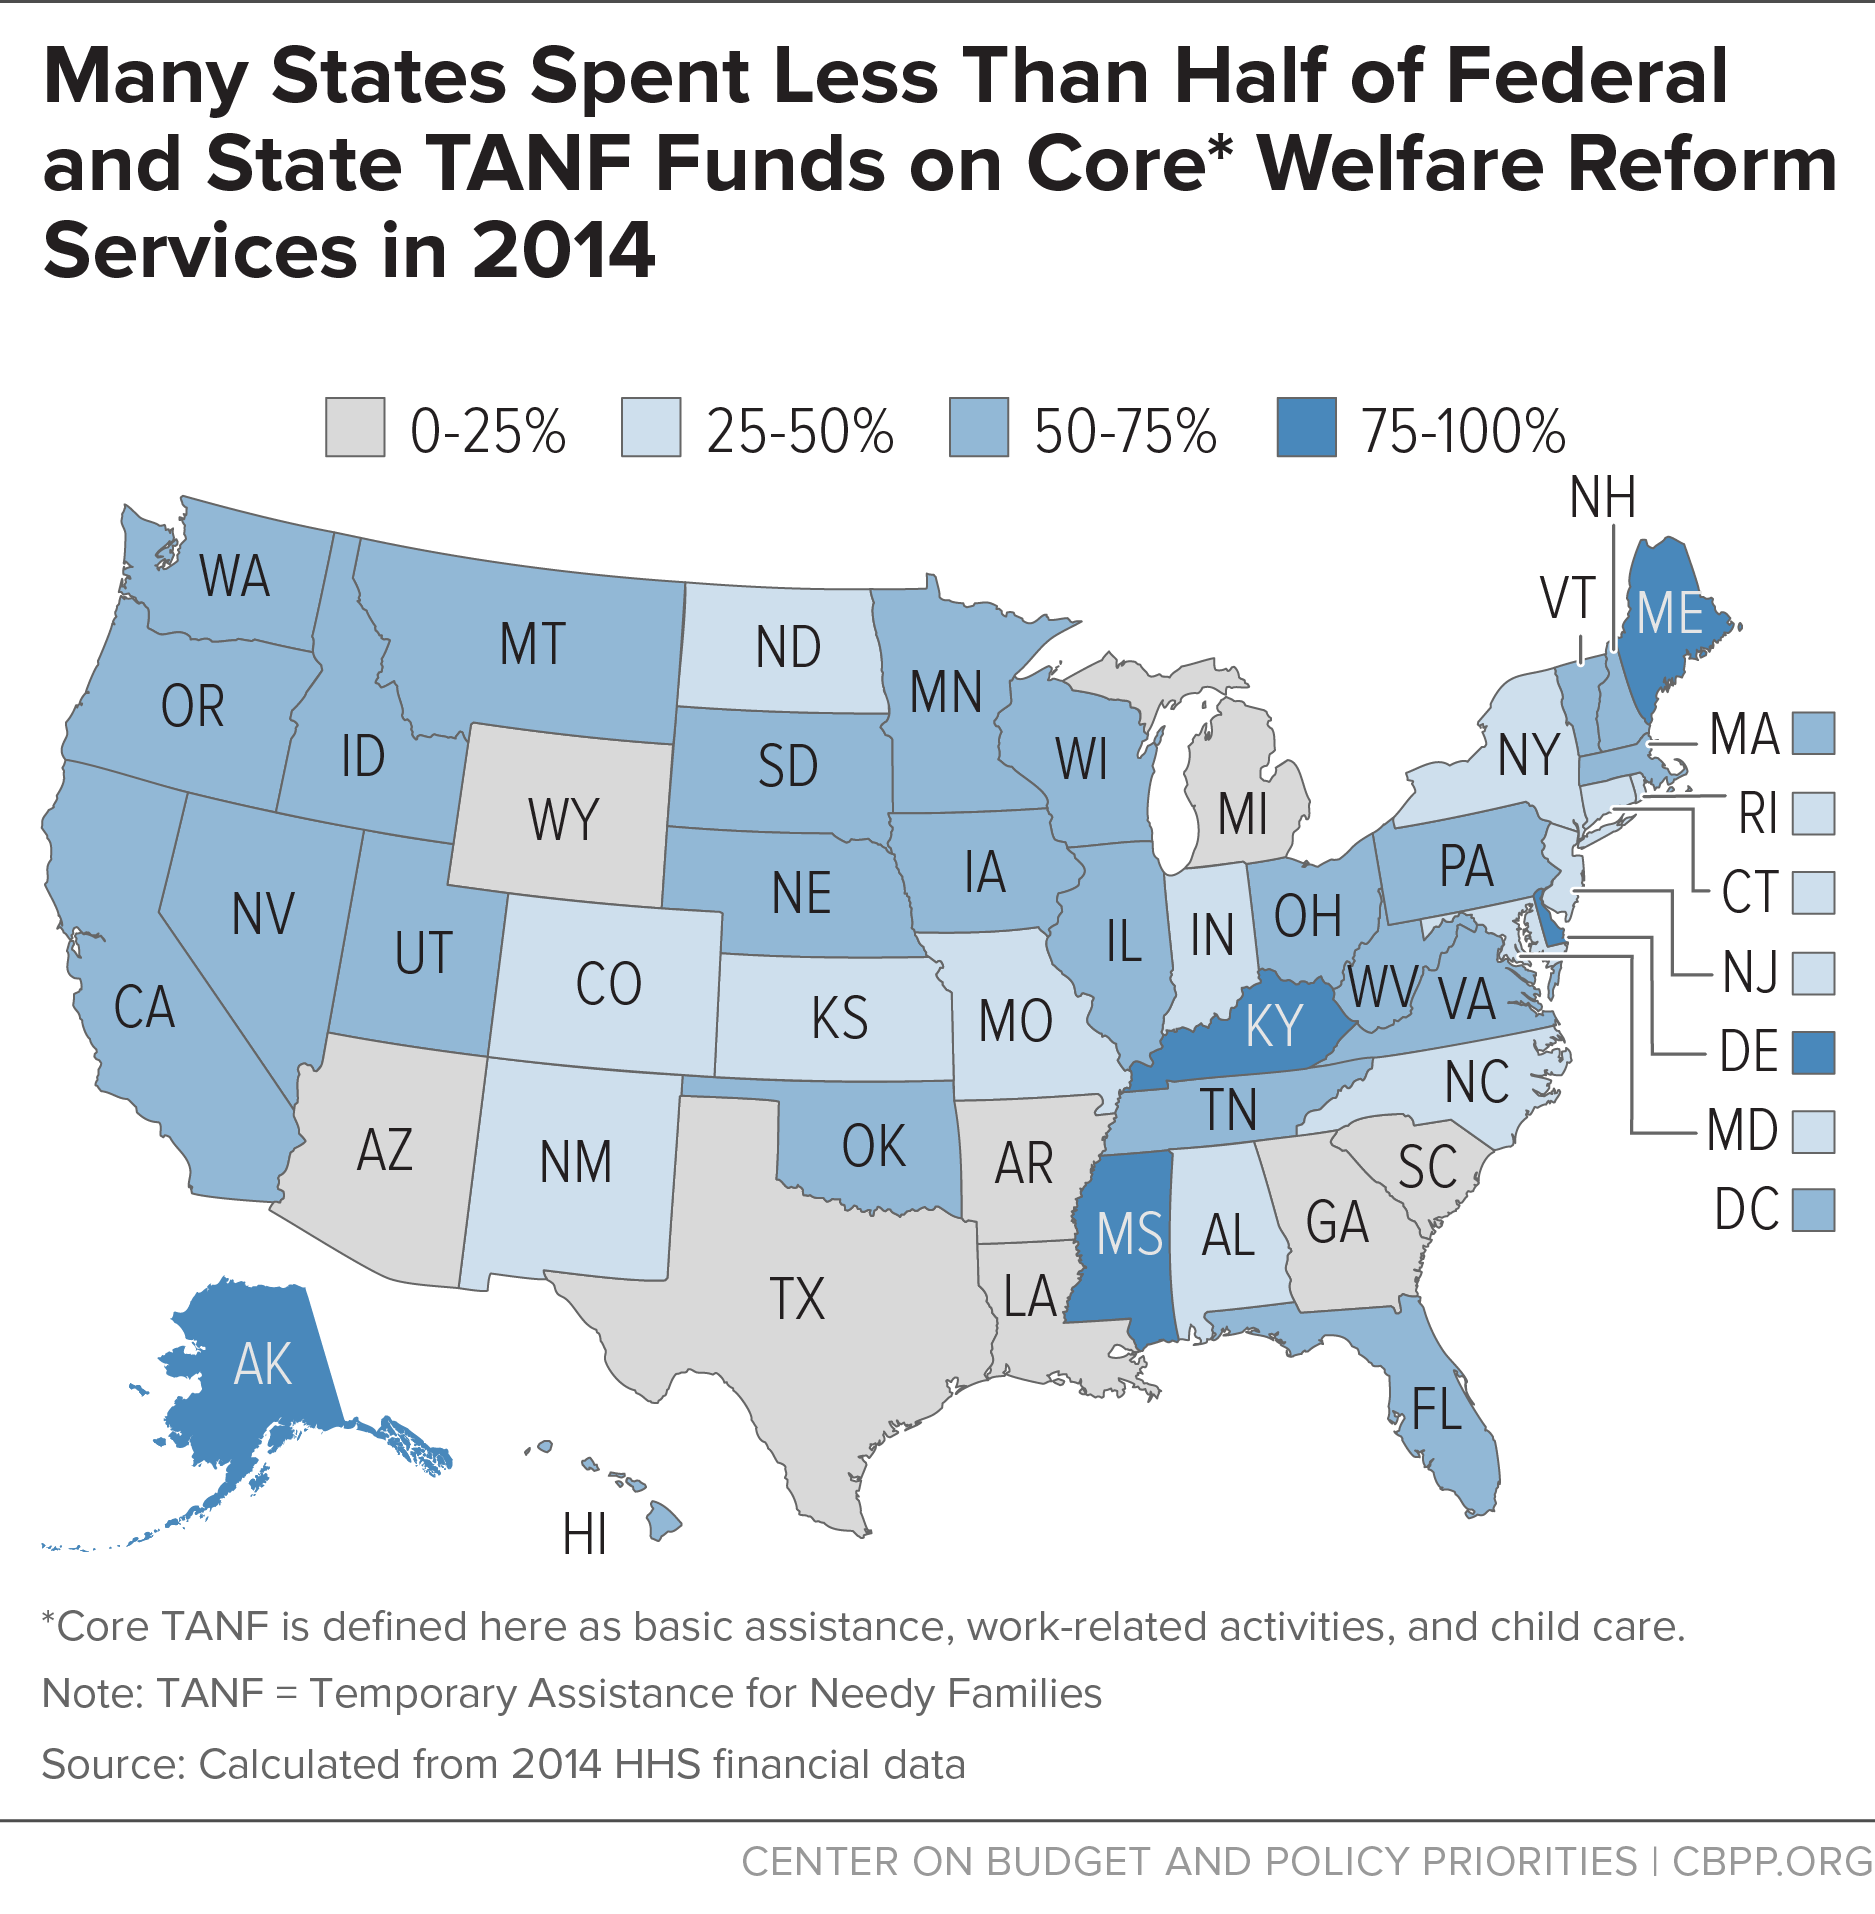 Many States Less Than Half on Core Welfare Reform 2014